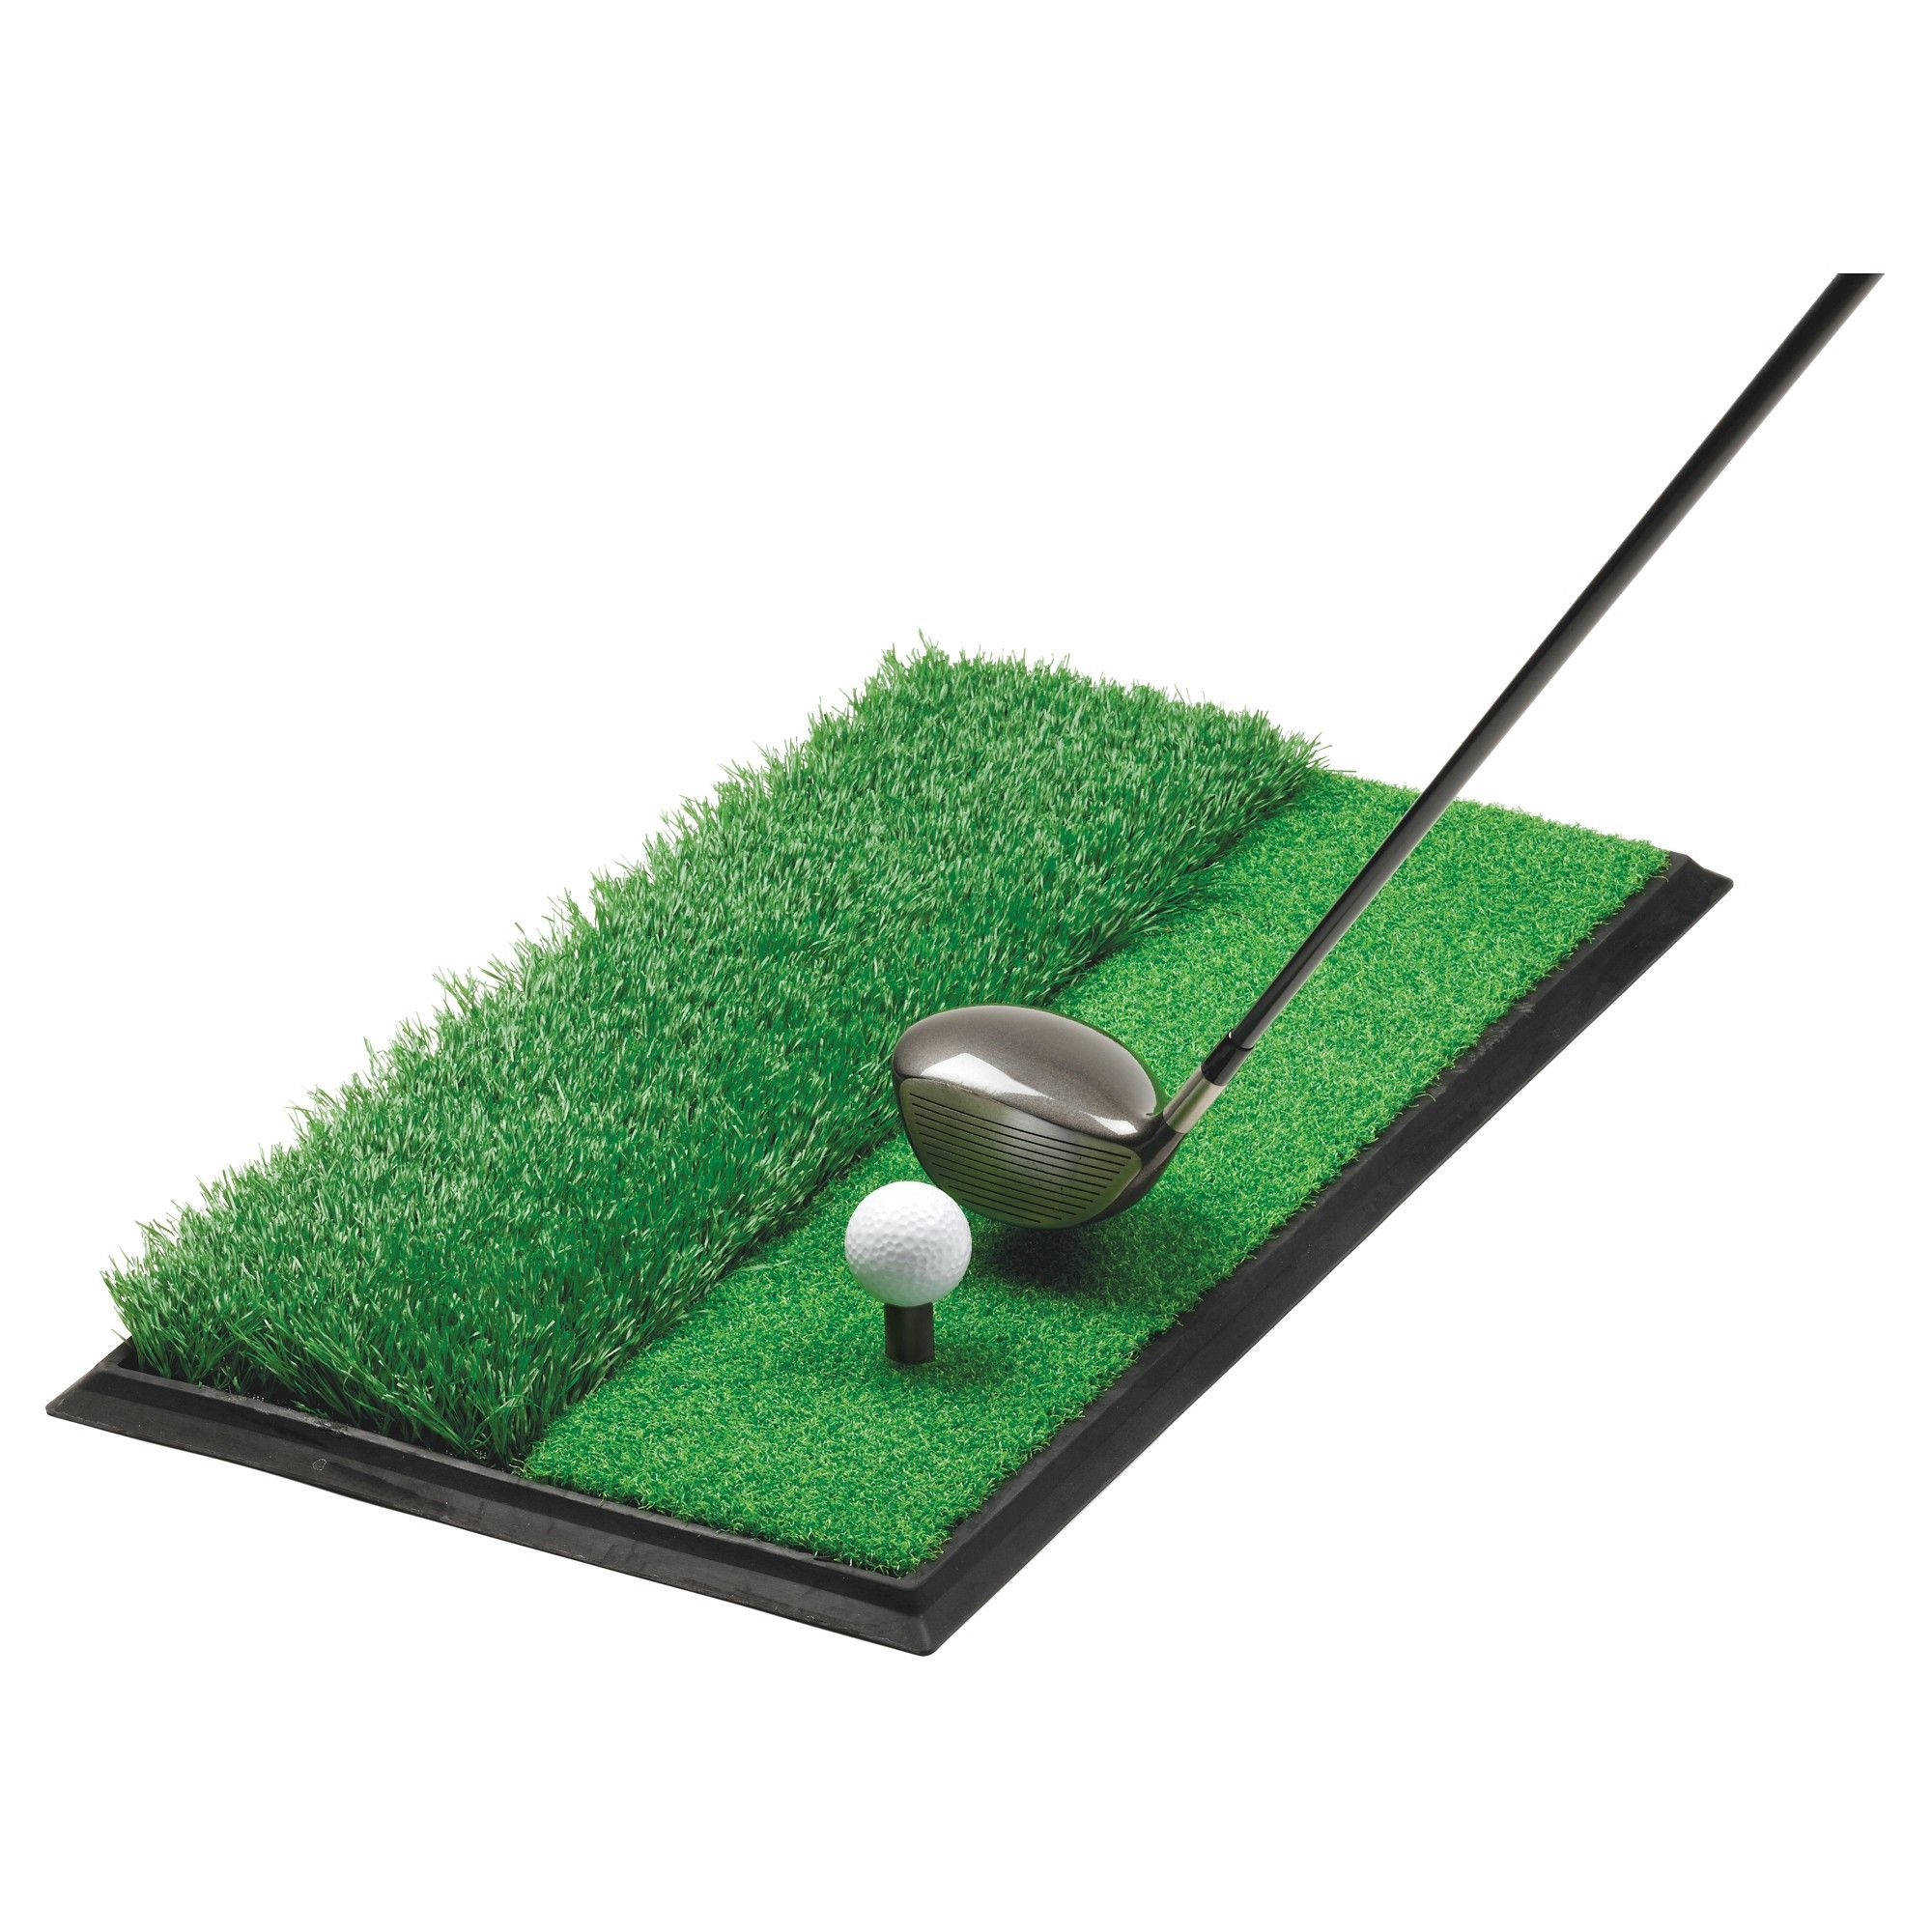 mats putting professional golf net pro green forb indoor mat practice